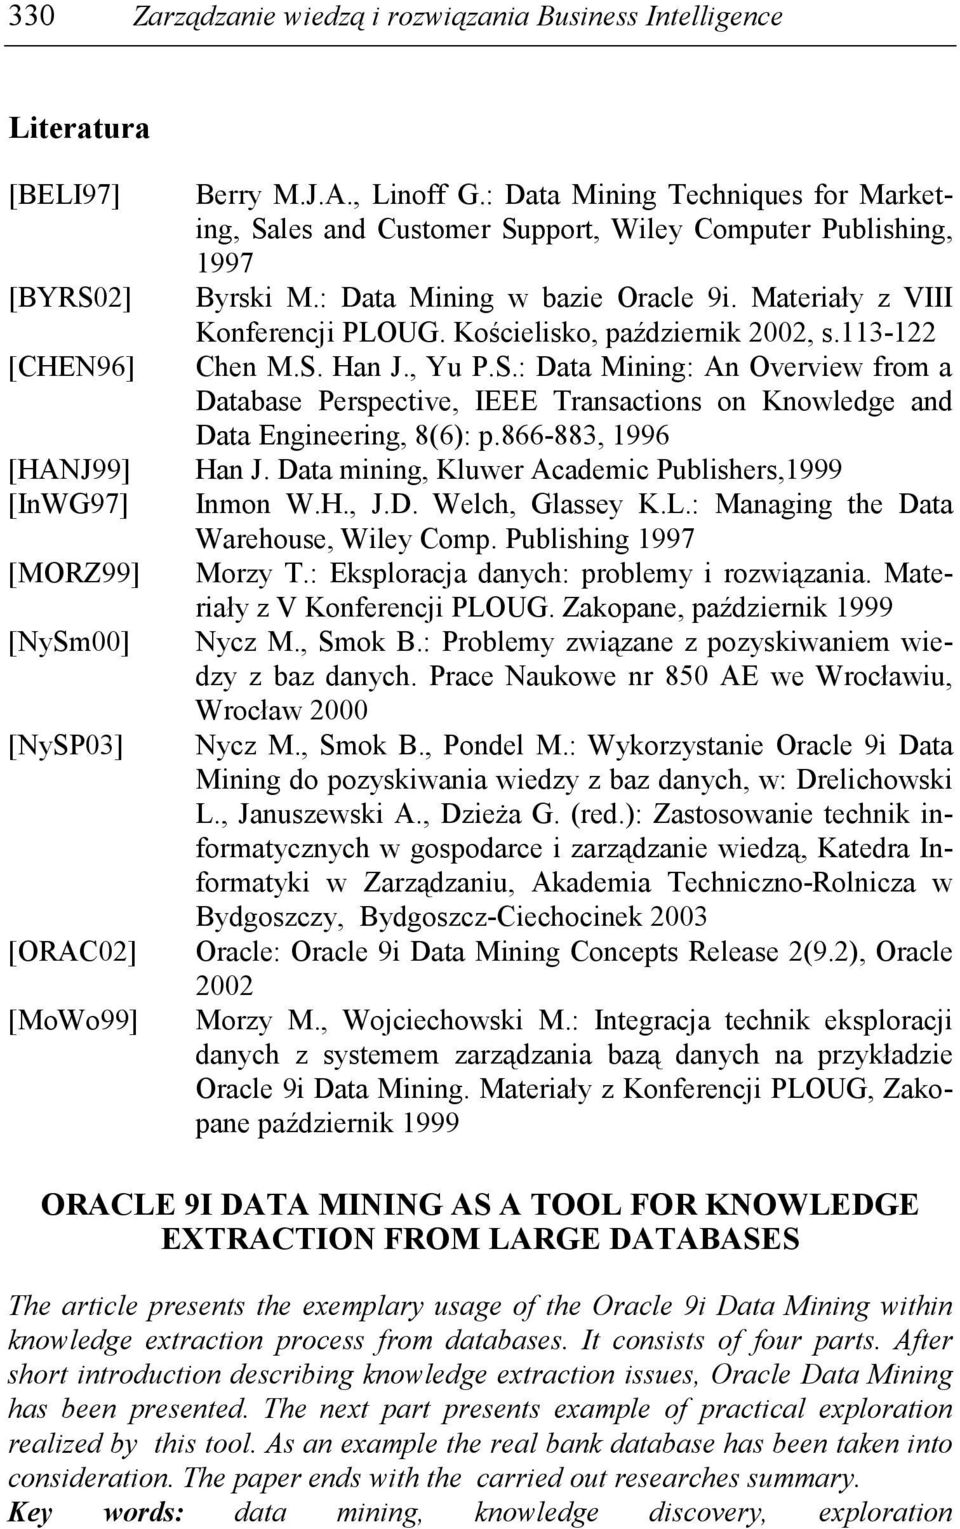 Kościelisko, październik 2002, s.113-122 Chen M.S. Han J., Yu P.S.: Data Mining: An Overview from a Database Perspective, IEEE Transactions on Knowledge and Data Engineering, 8(6): p.